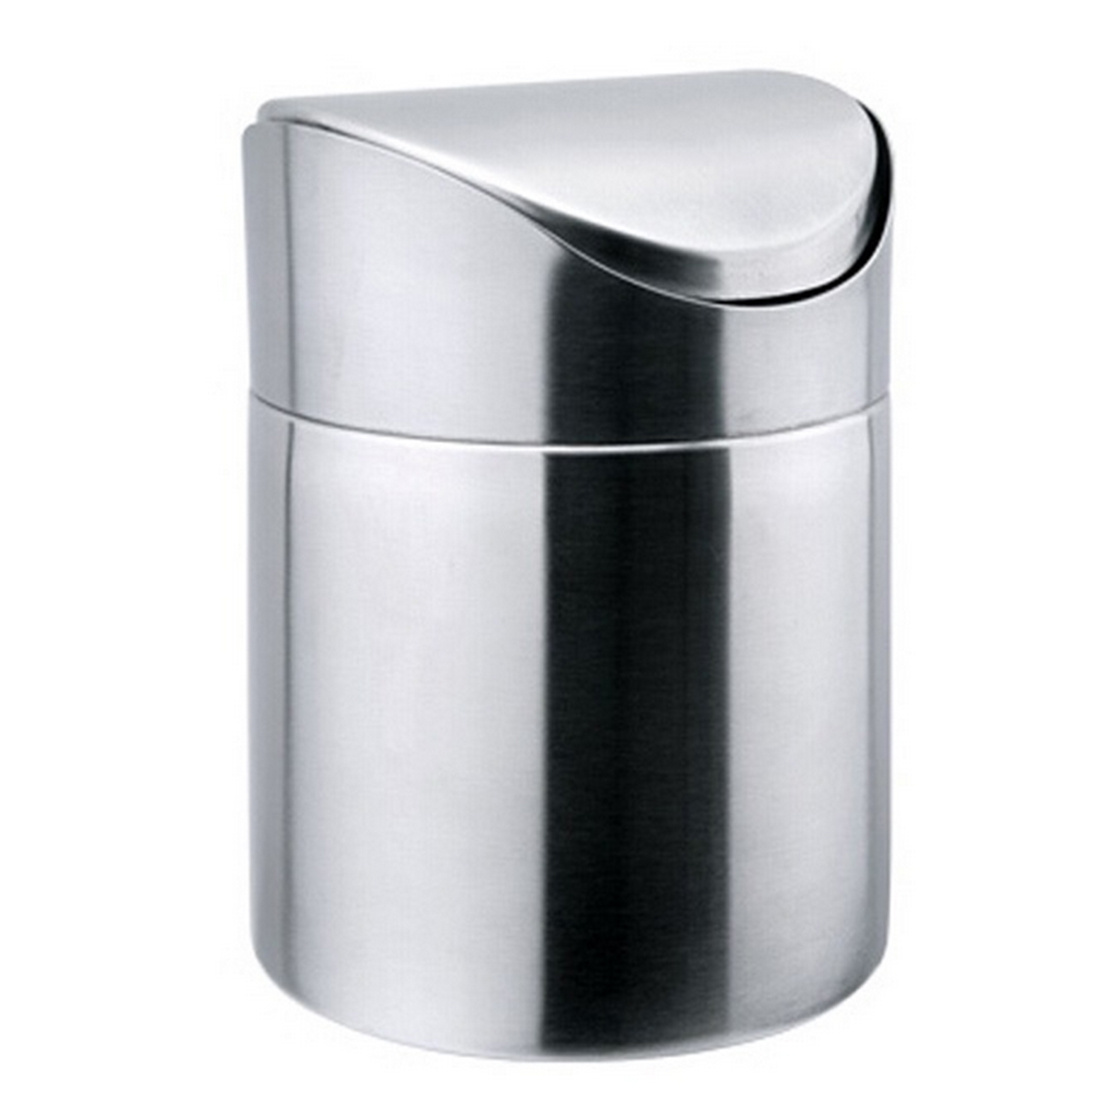 US $11.45 21% OFF|Europe Style Stainless Steel Trash Basket Large Bedroom  Living Room Bathroom Waste Bins Kitchen Trash Bins House Cleaning Tools-in  ...